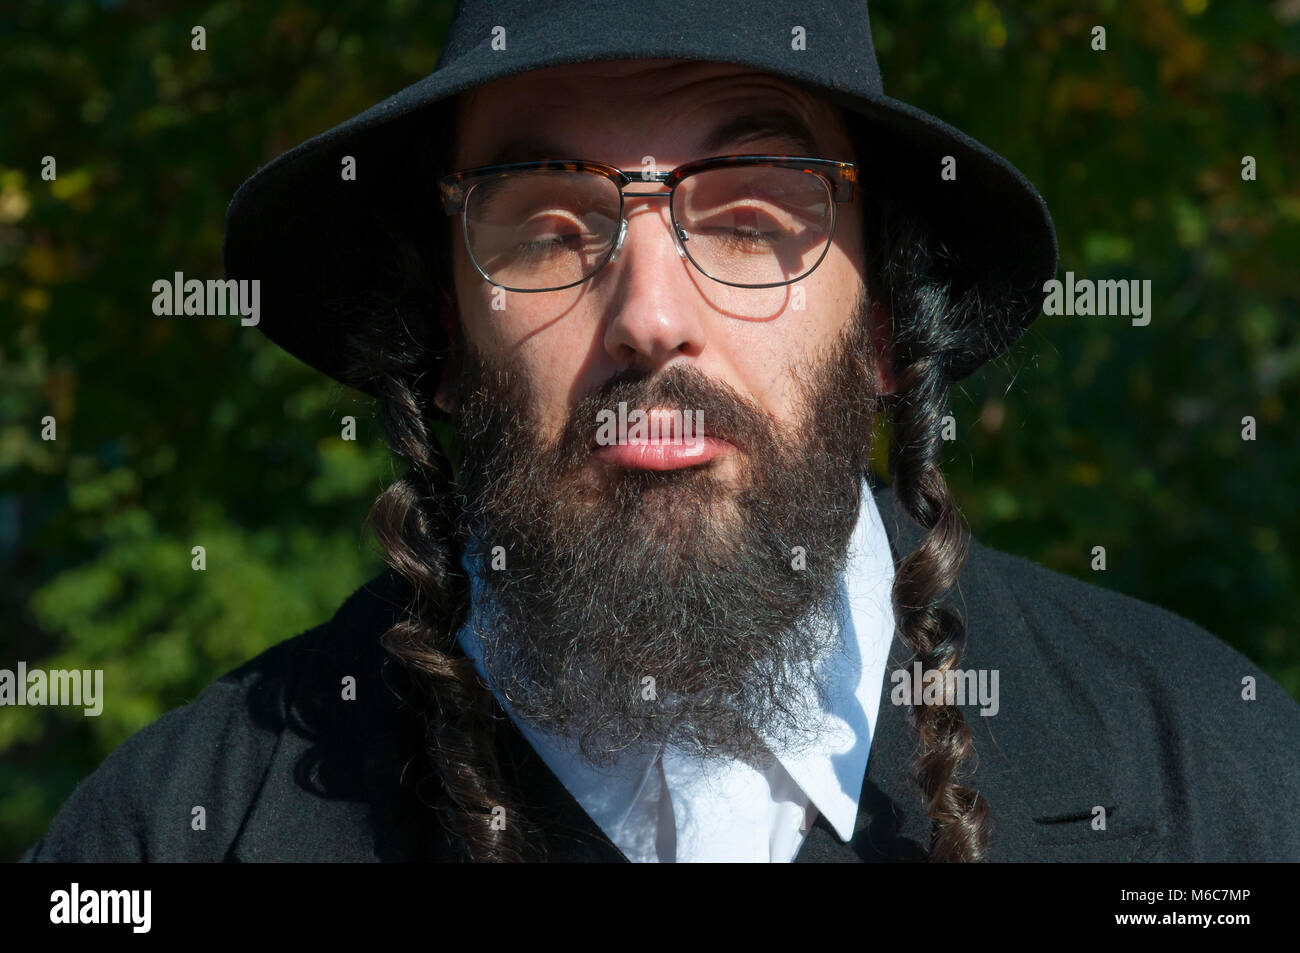 303f968fec8 Outdoor sunny portrait of bewildered closed eyes young traditional orthodox  Jewish man with black beard and